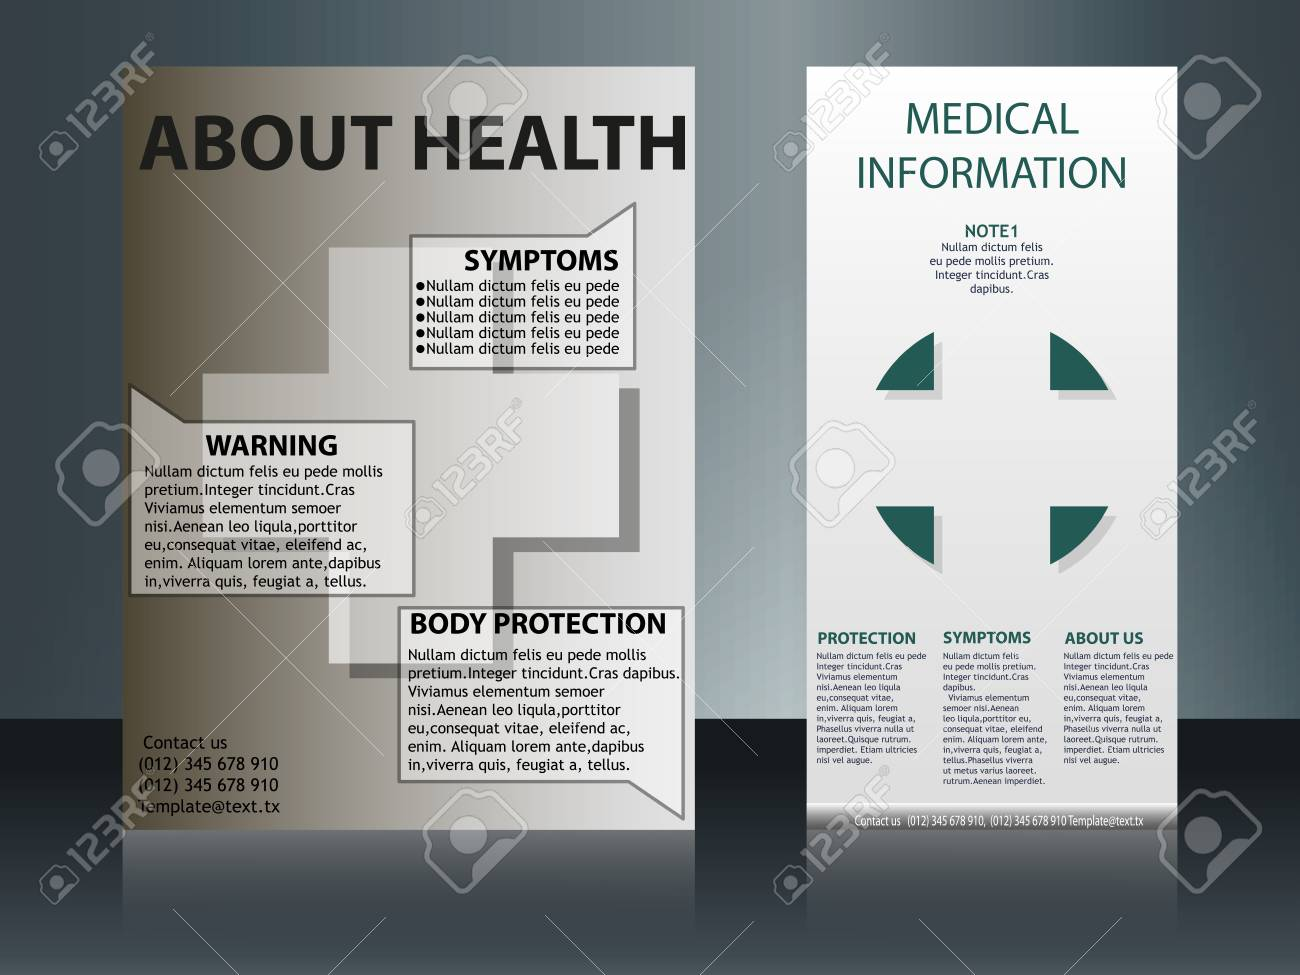 Collection of 2 abstract medical business cards or visiting cards collection of 2 abstract medical business cards or visiting cards on different topic arrange in reheart Image collections